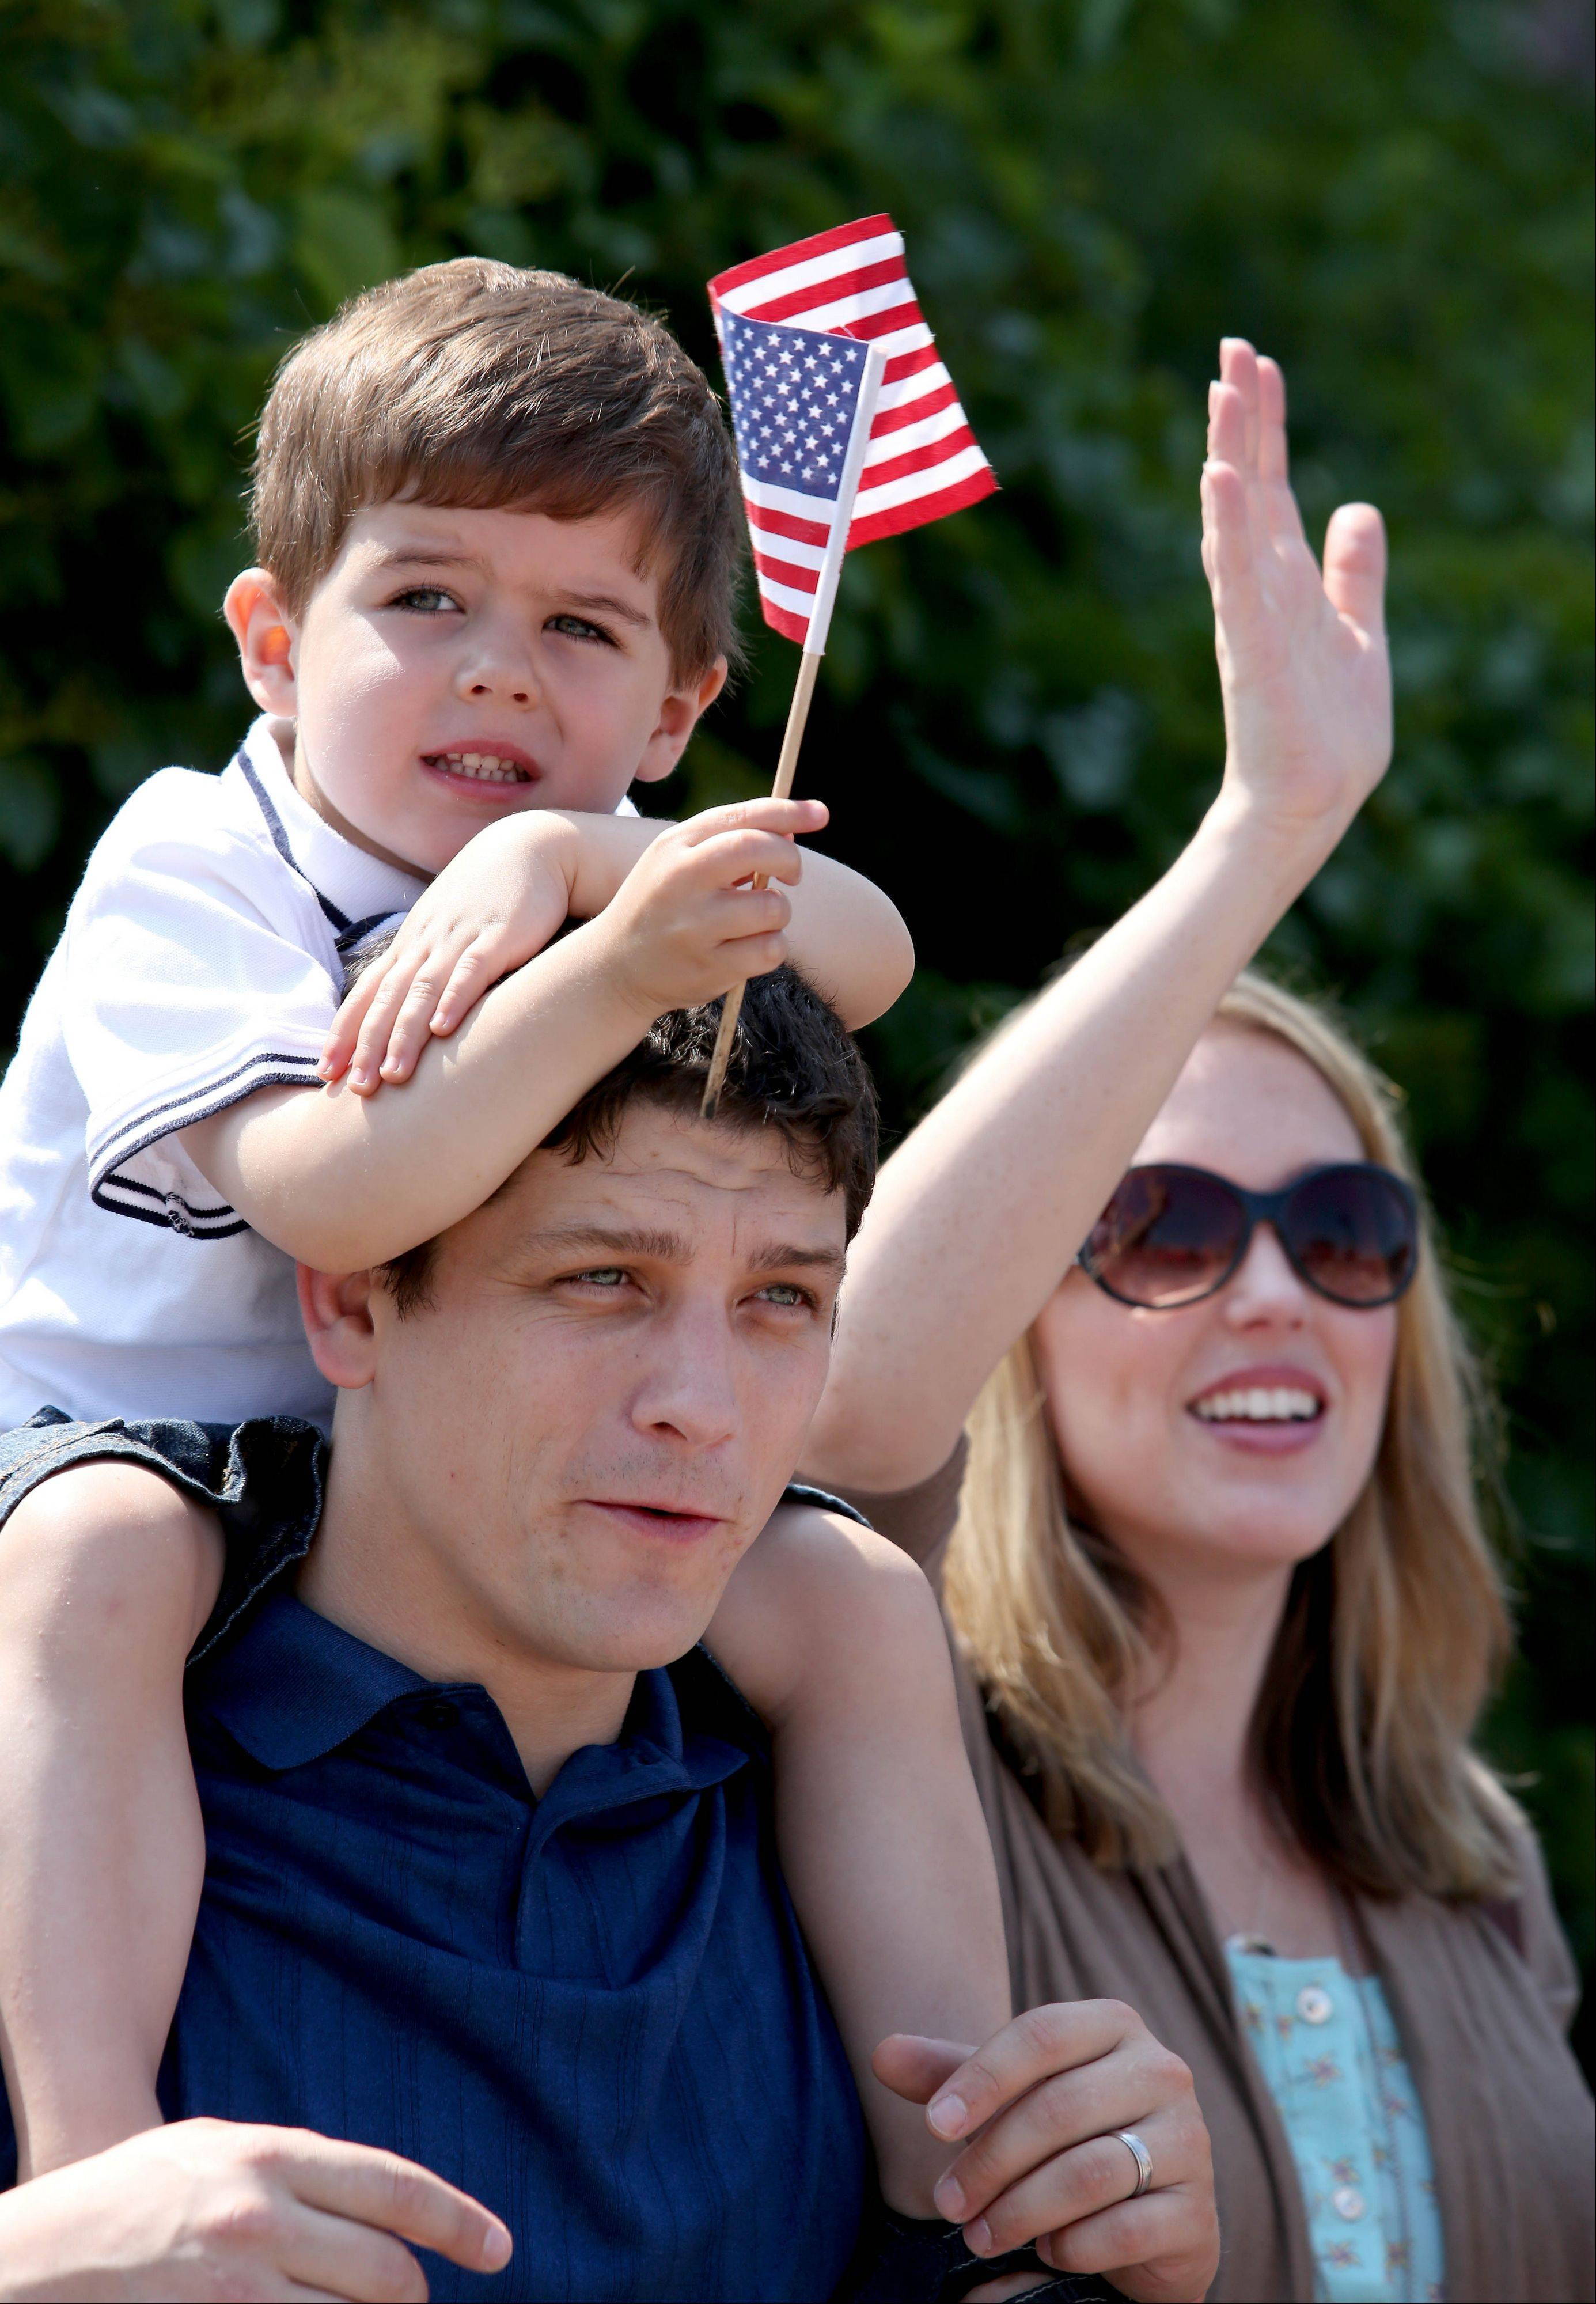 Tyler and Erin Birt of Wheaton with their son Ryan, 3, watch the 4th of July parade go by in Wheaton on Thursday.